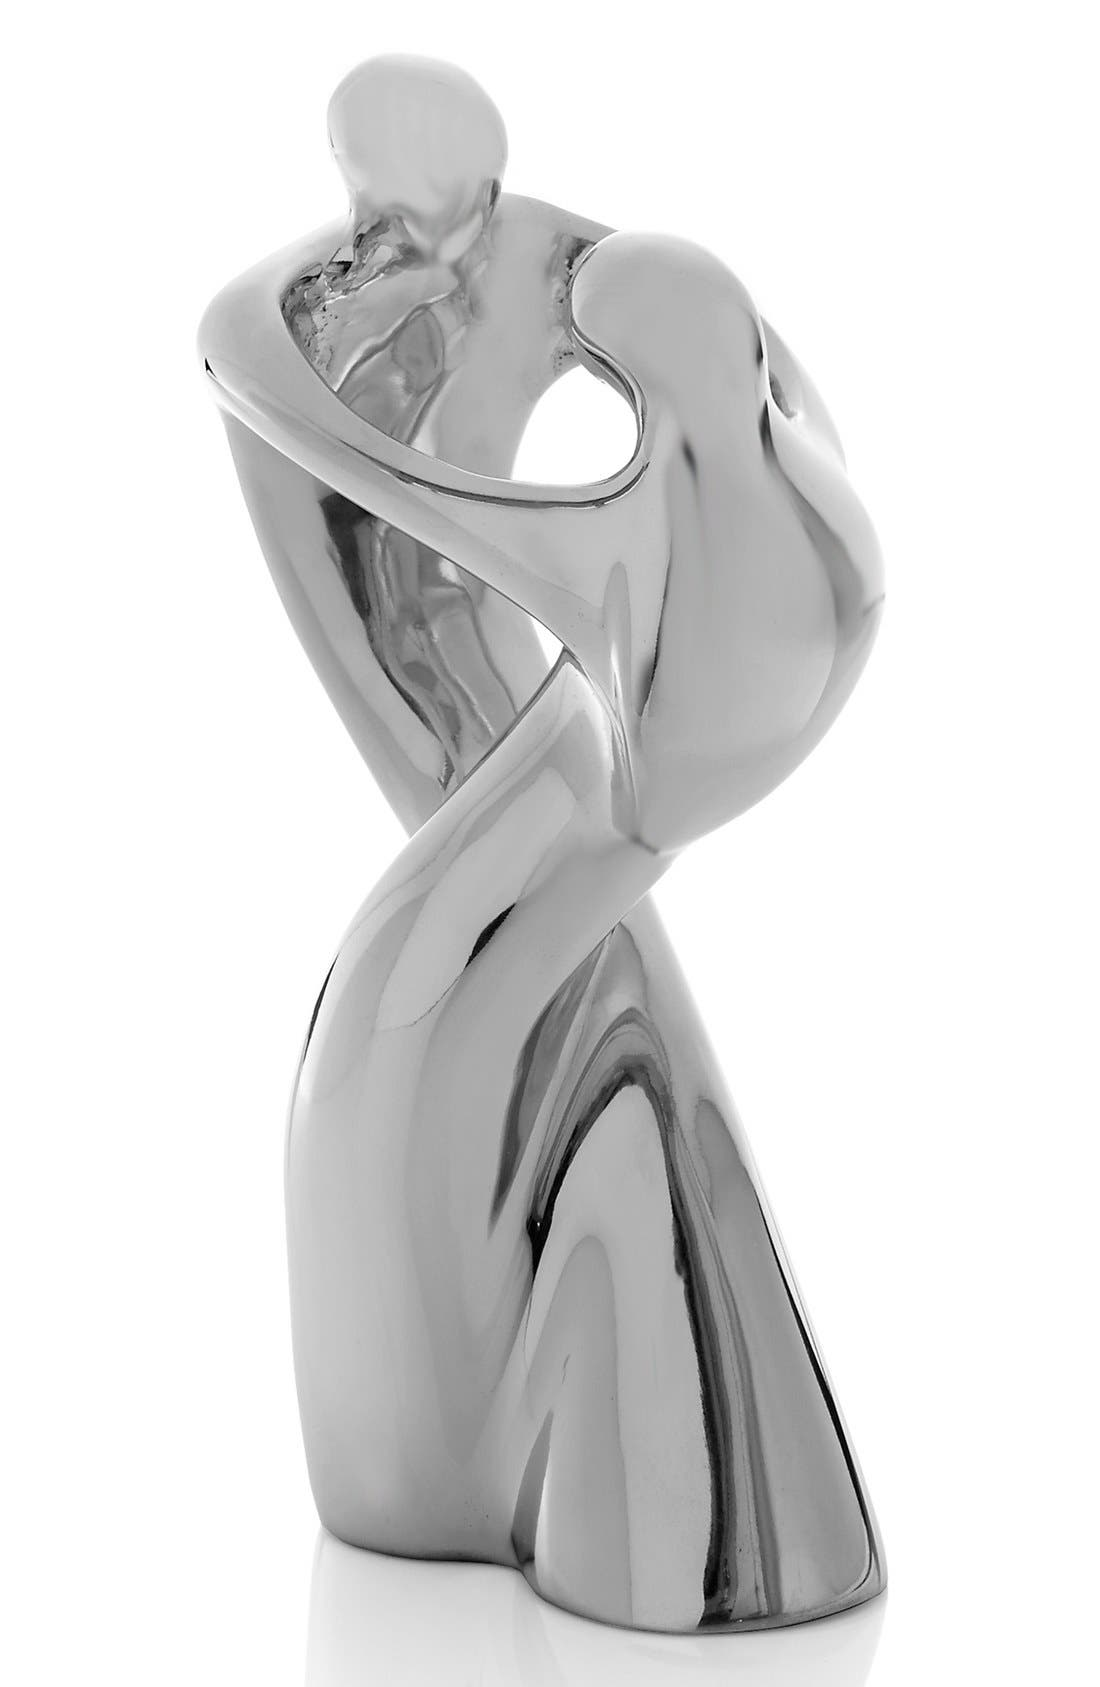 NAMBÉ 'Embrace' Sculpture